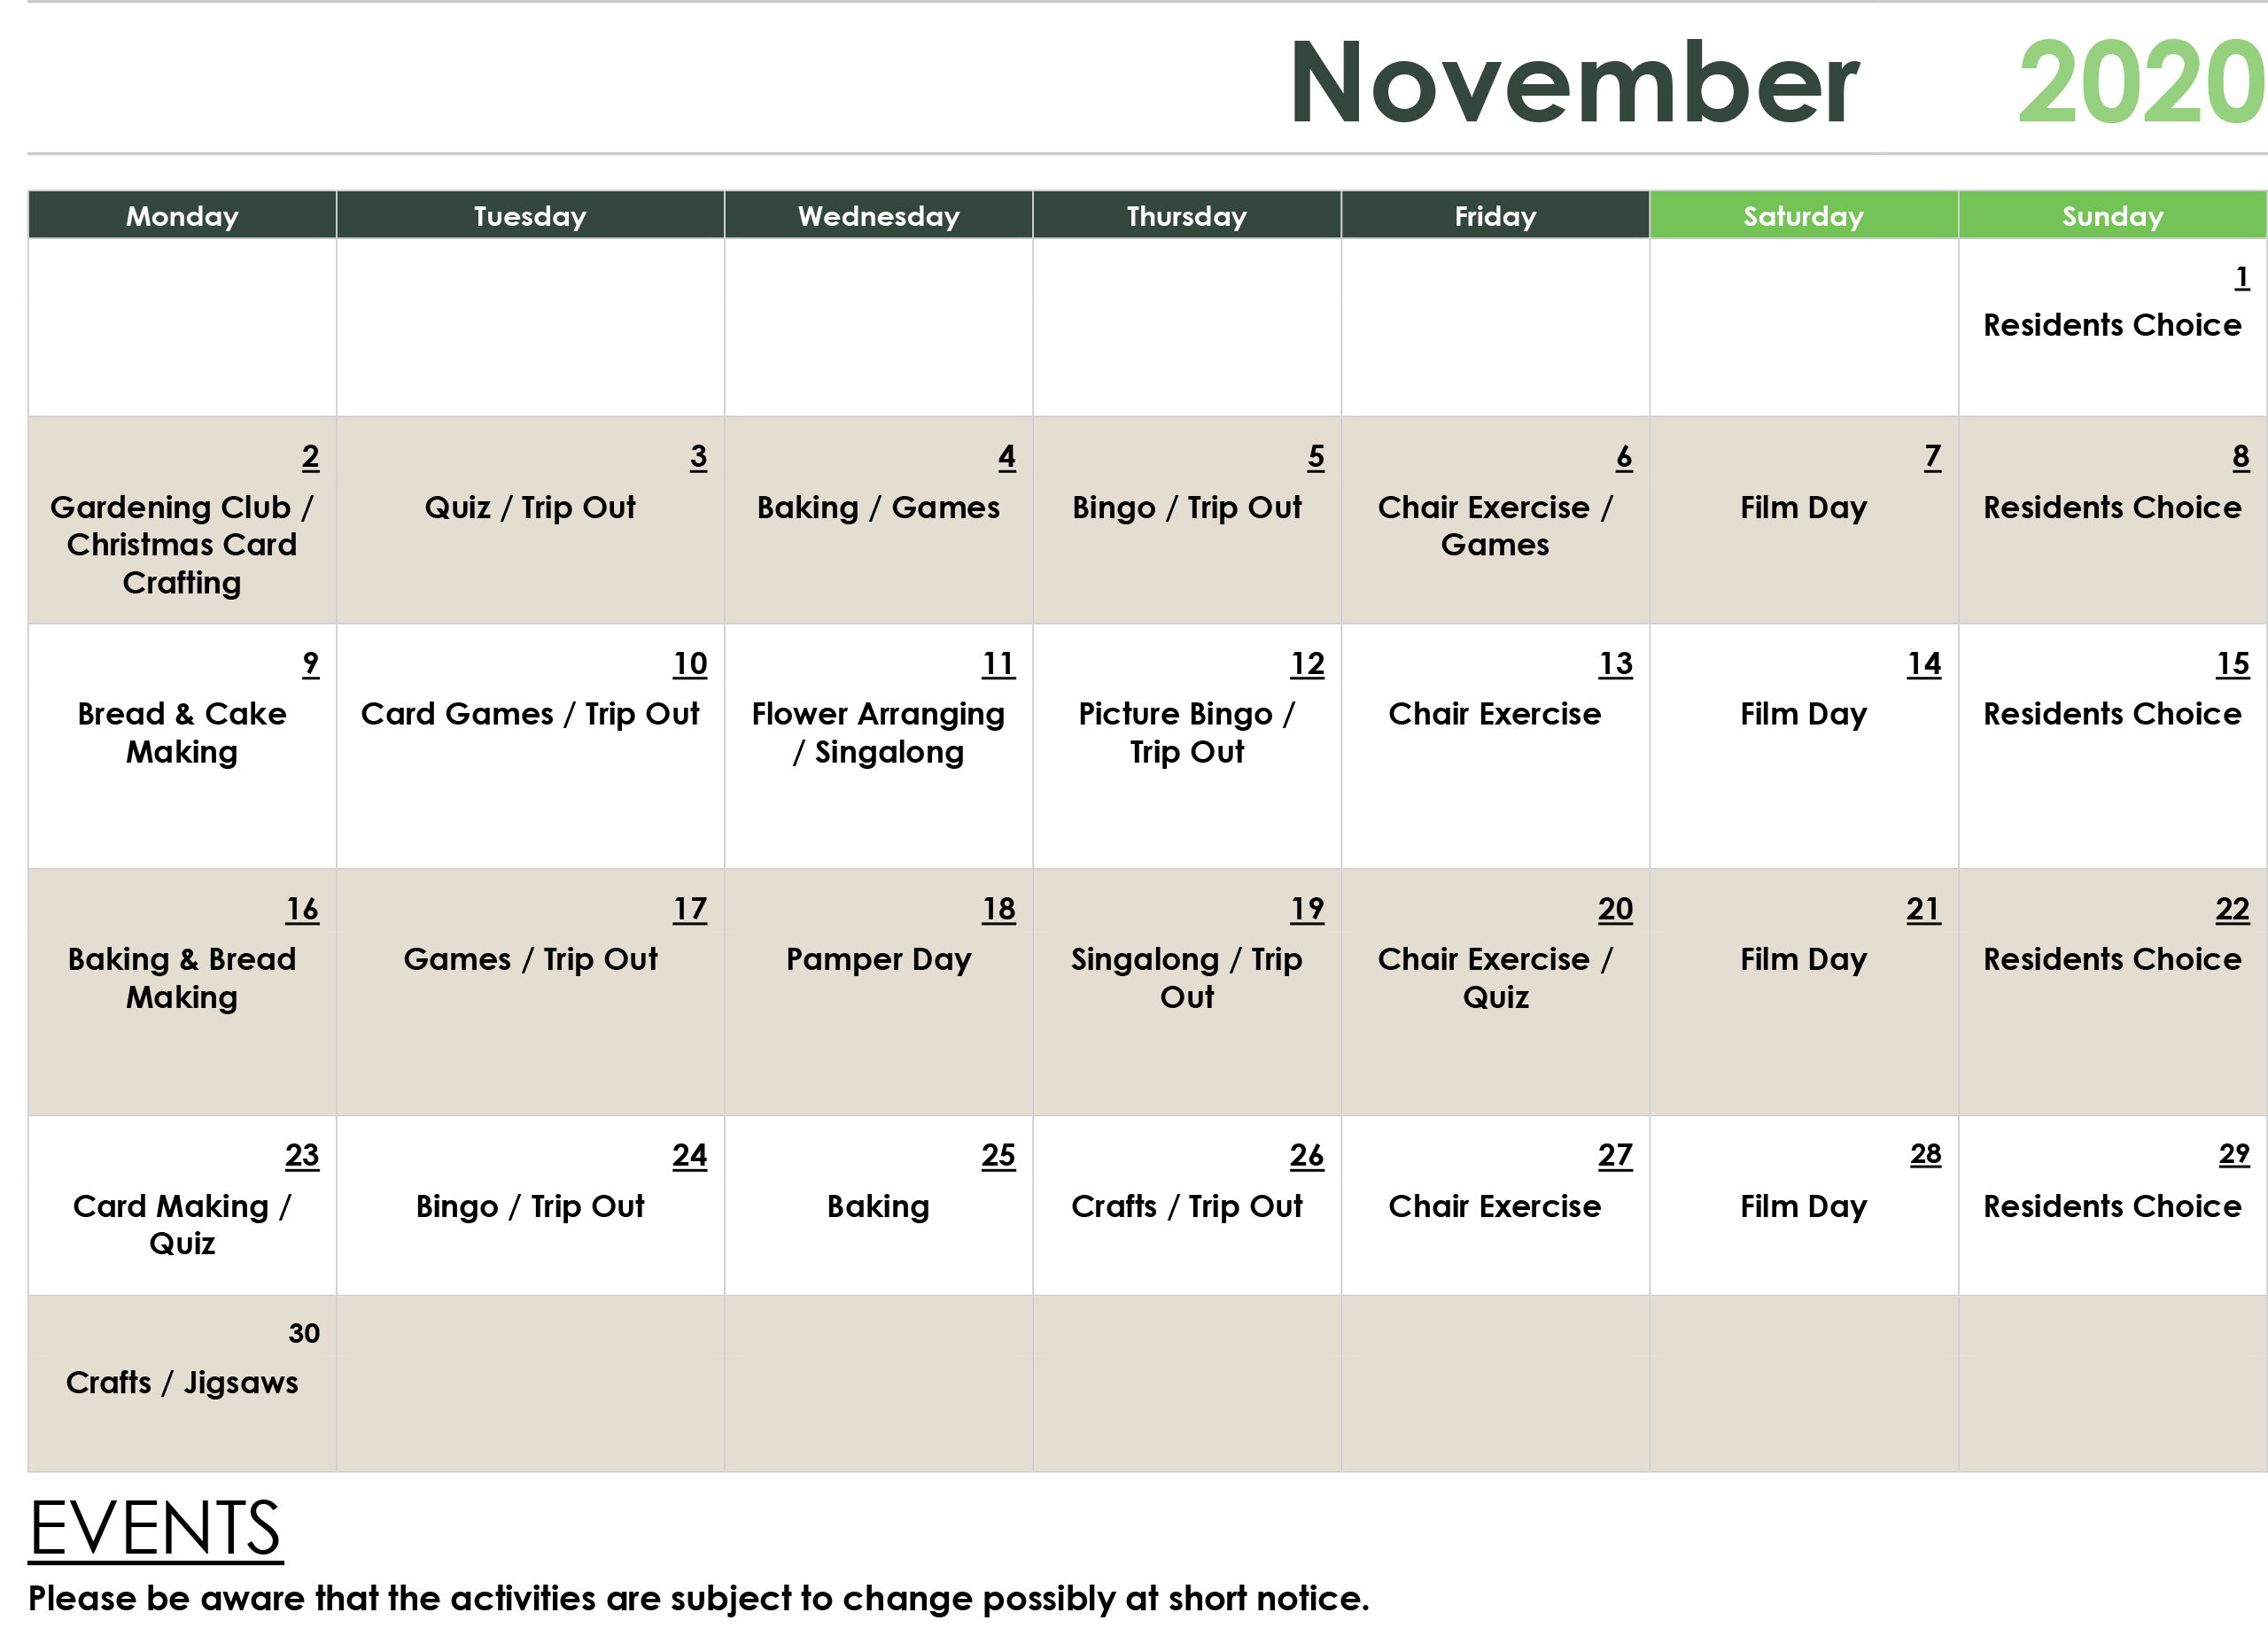 November Care Home Activities